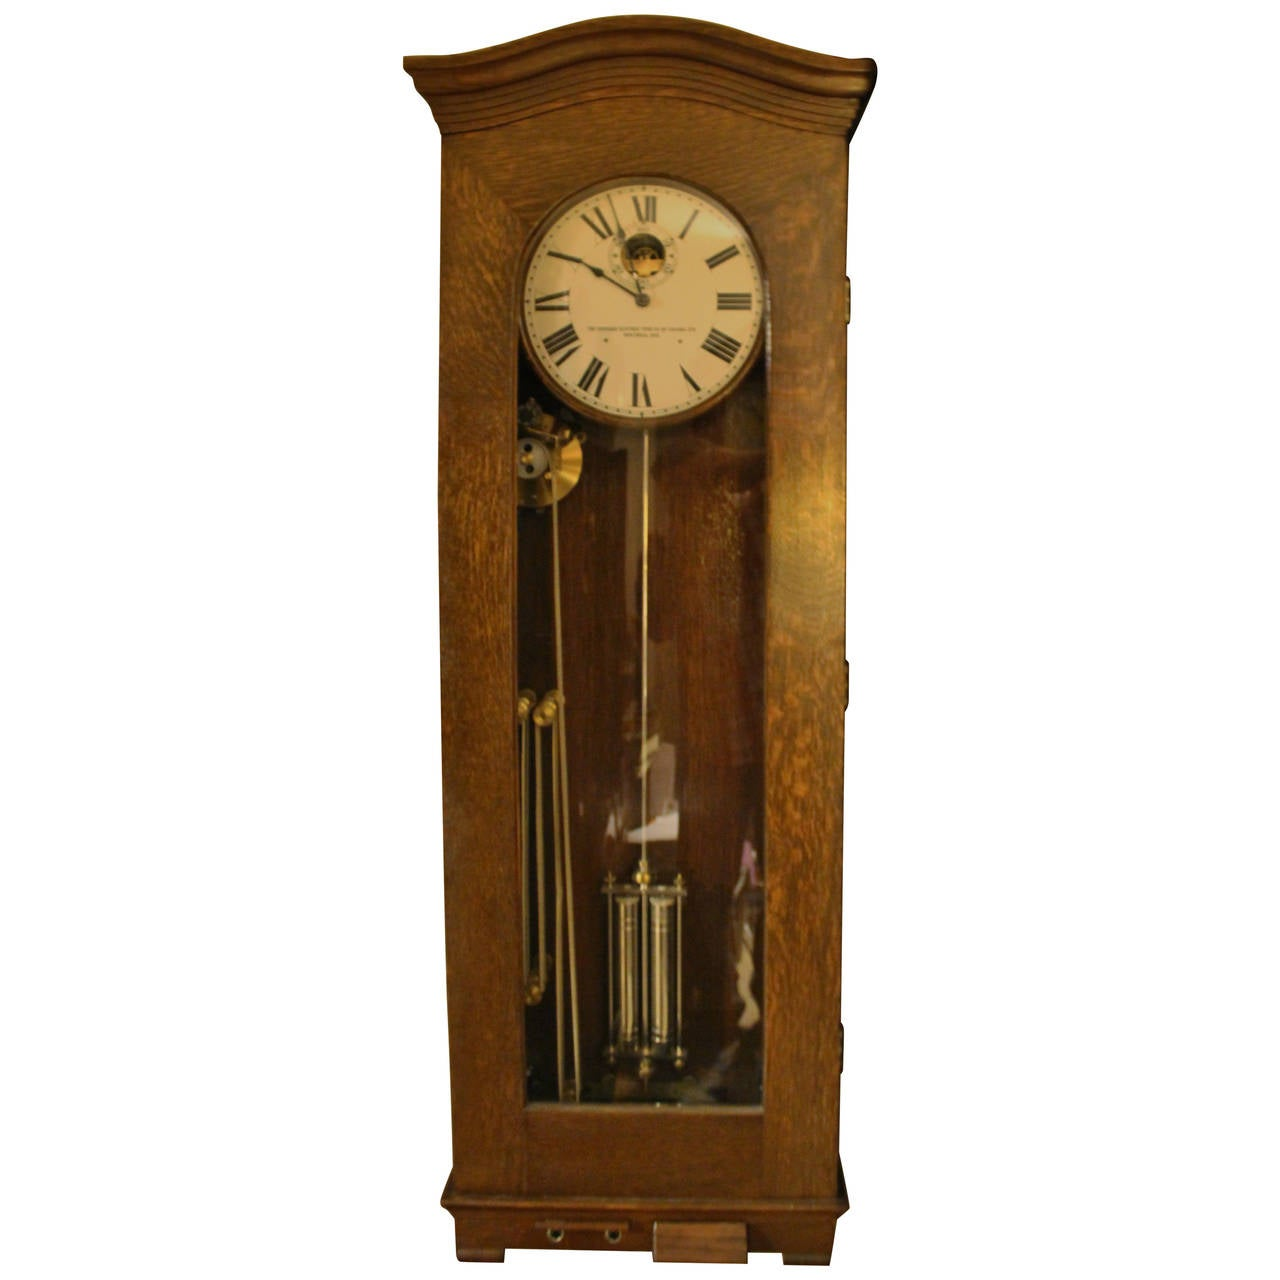 Standard electric master clock machine age for sale at 1stdibs standard electric master clock machine age 1 amipublicfo Images